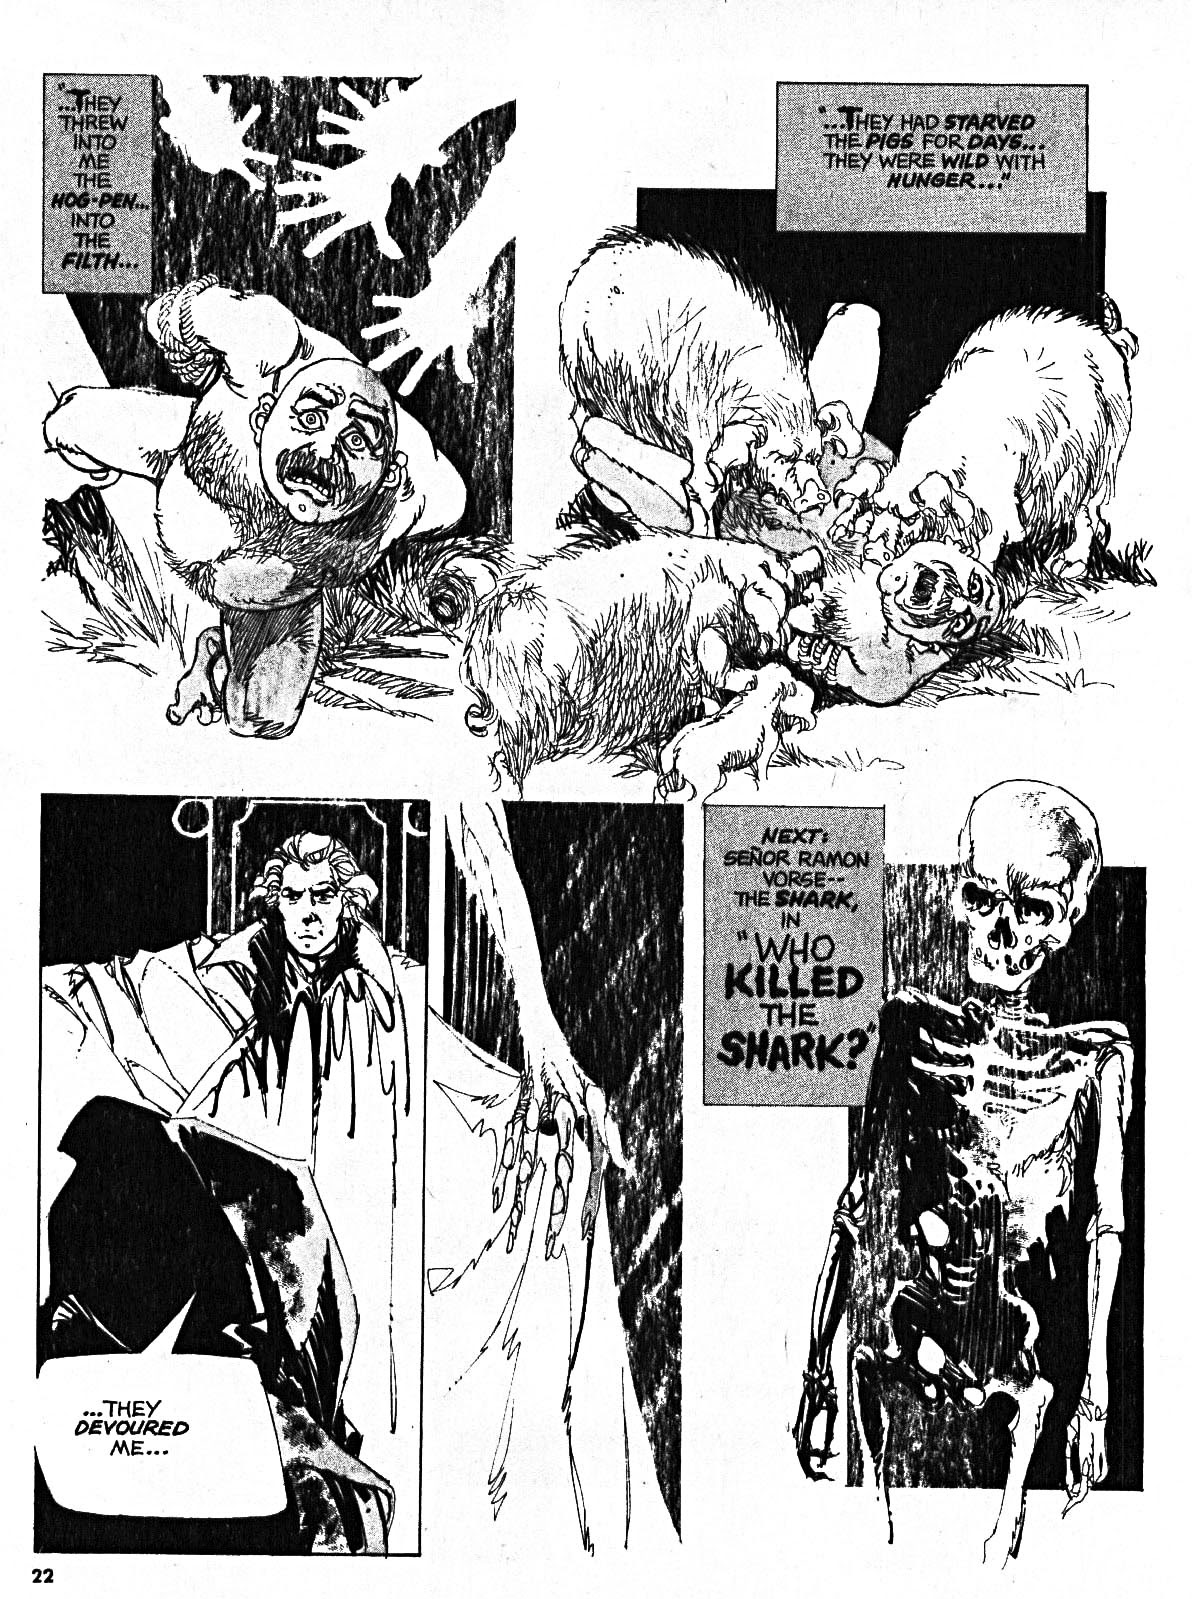 Scream (1973) issue 8 - Page 21